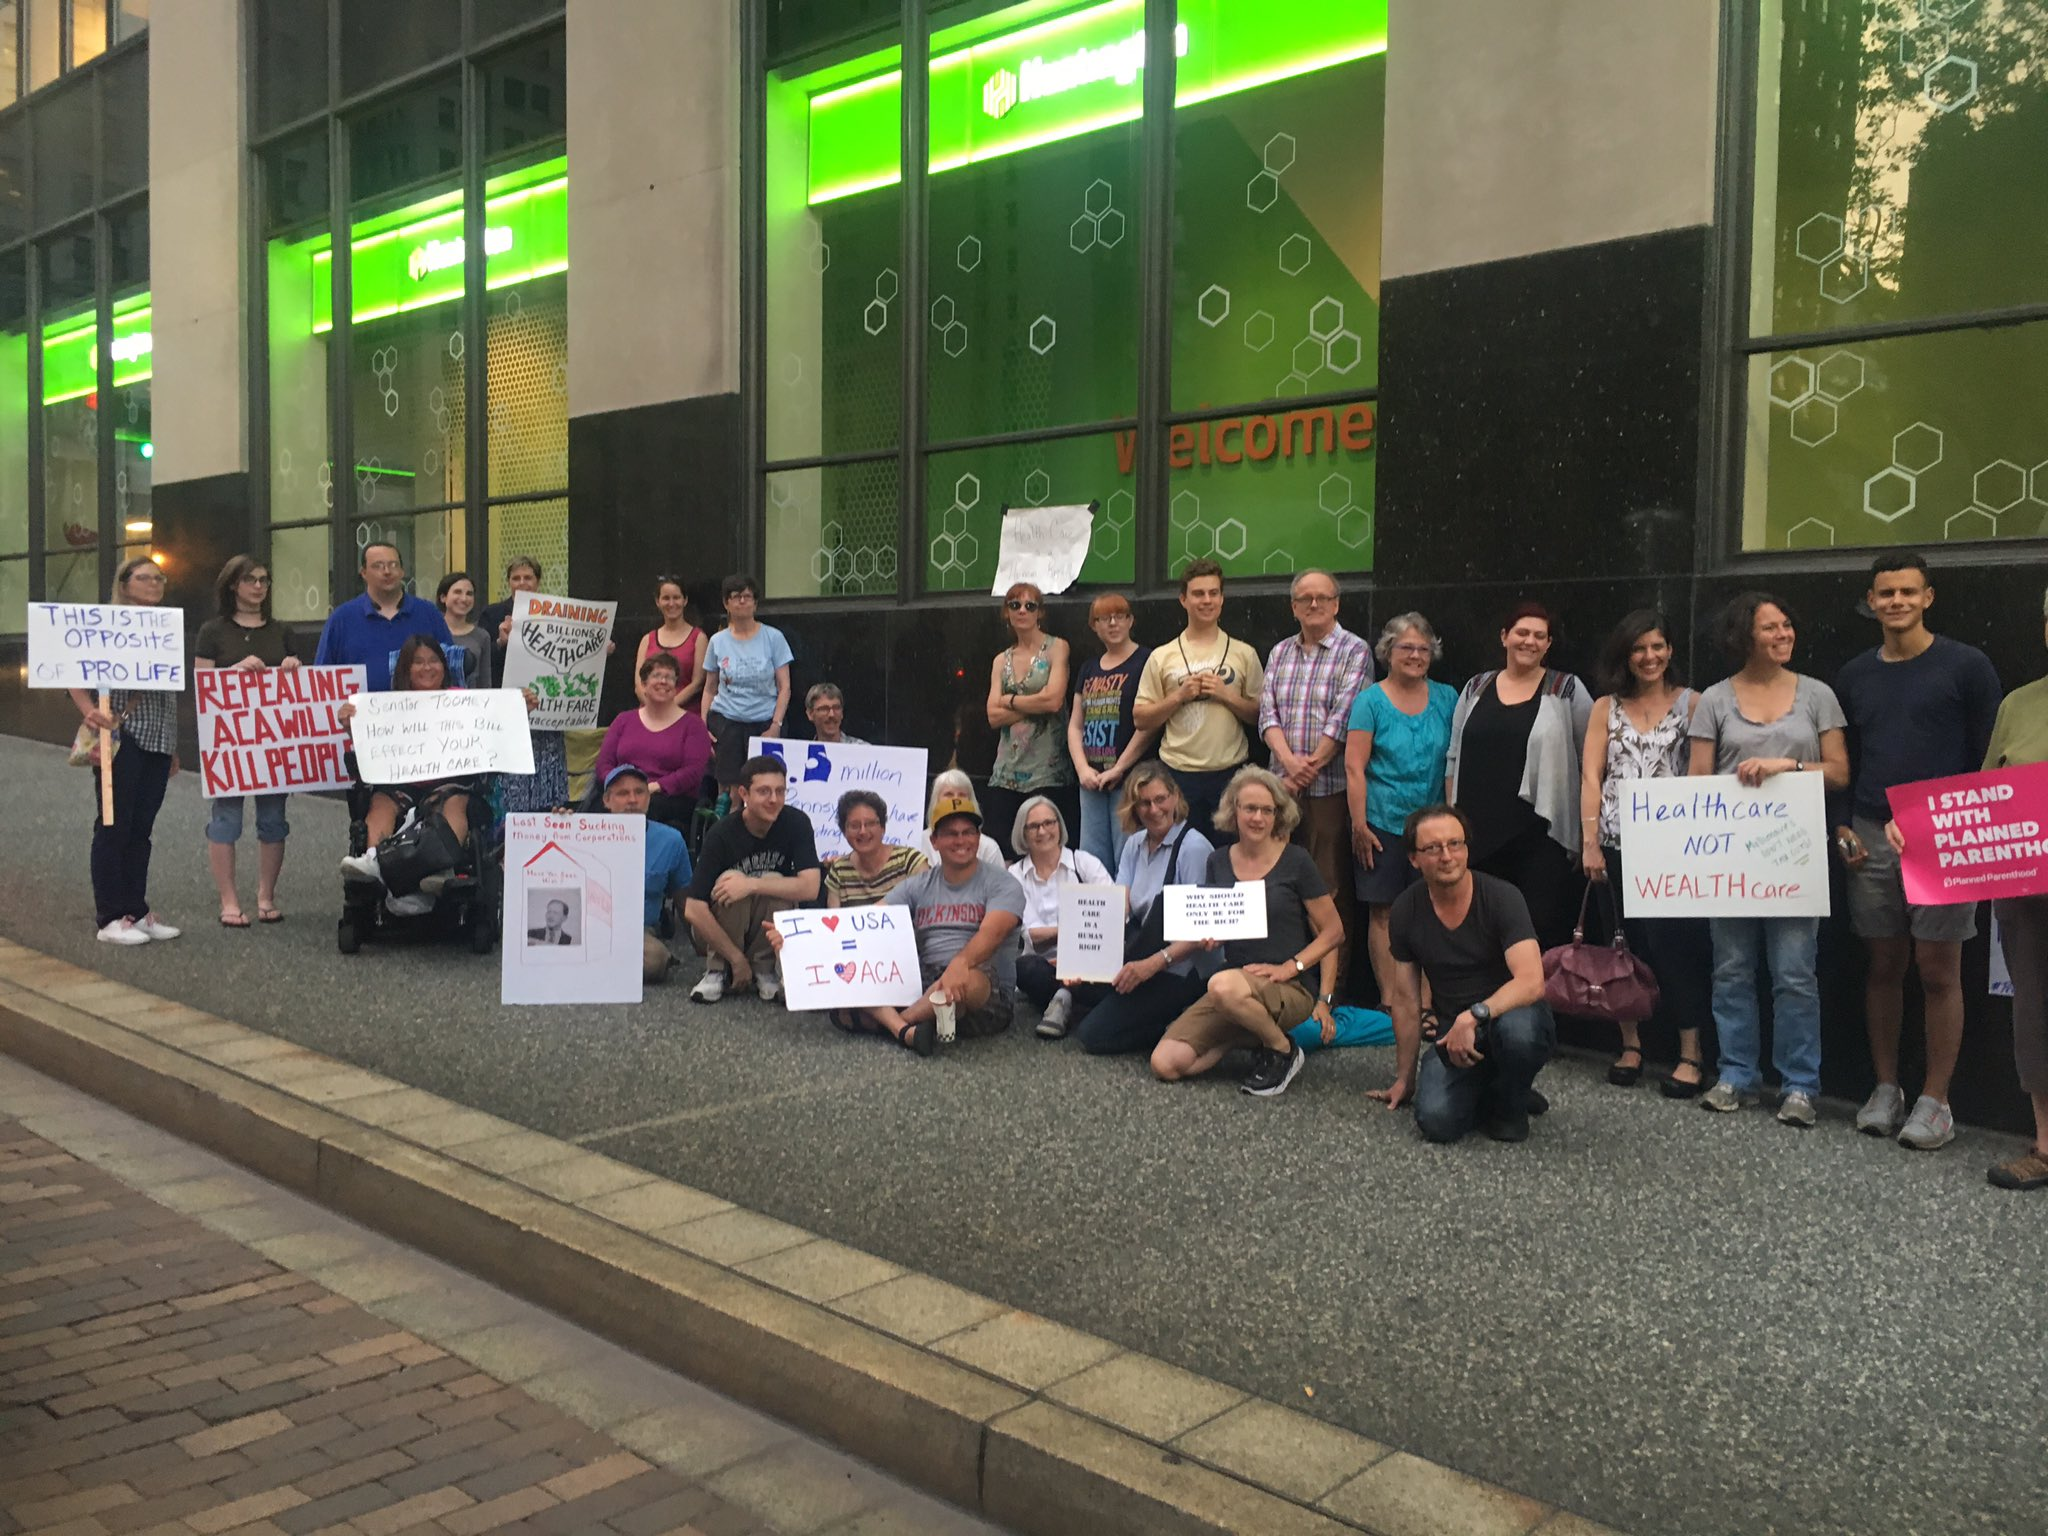 The 24hr #VigilforOurLives is still going strong outside @SenToomey's #PGH office!  #ProtectOurCare #HealthcareBill https://t.co/SQIOJ0blUV